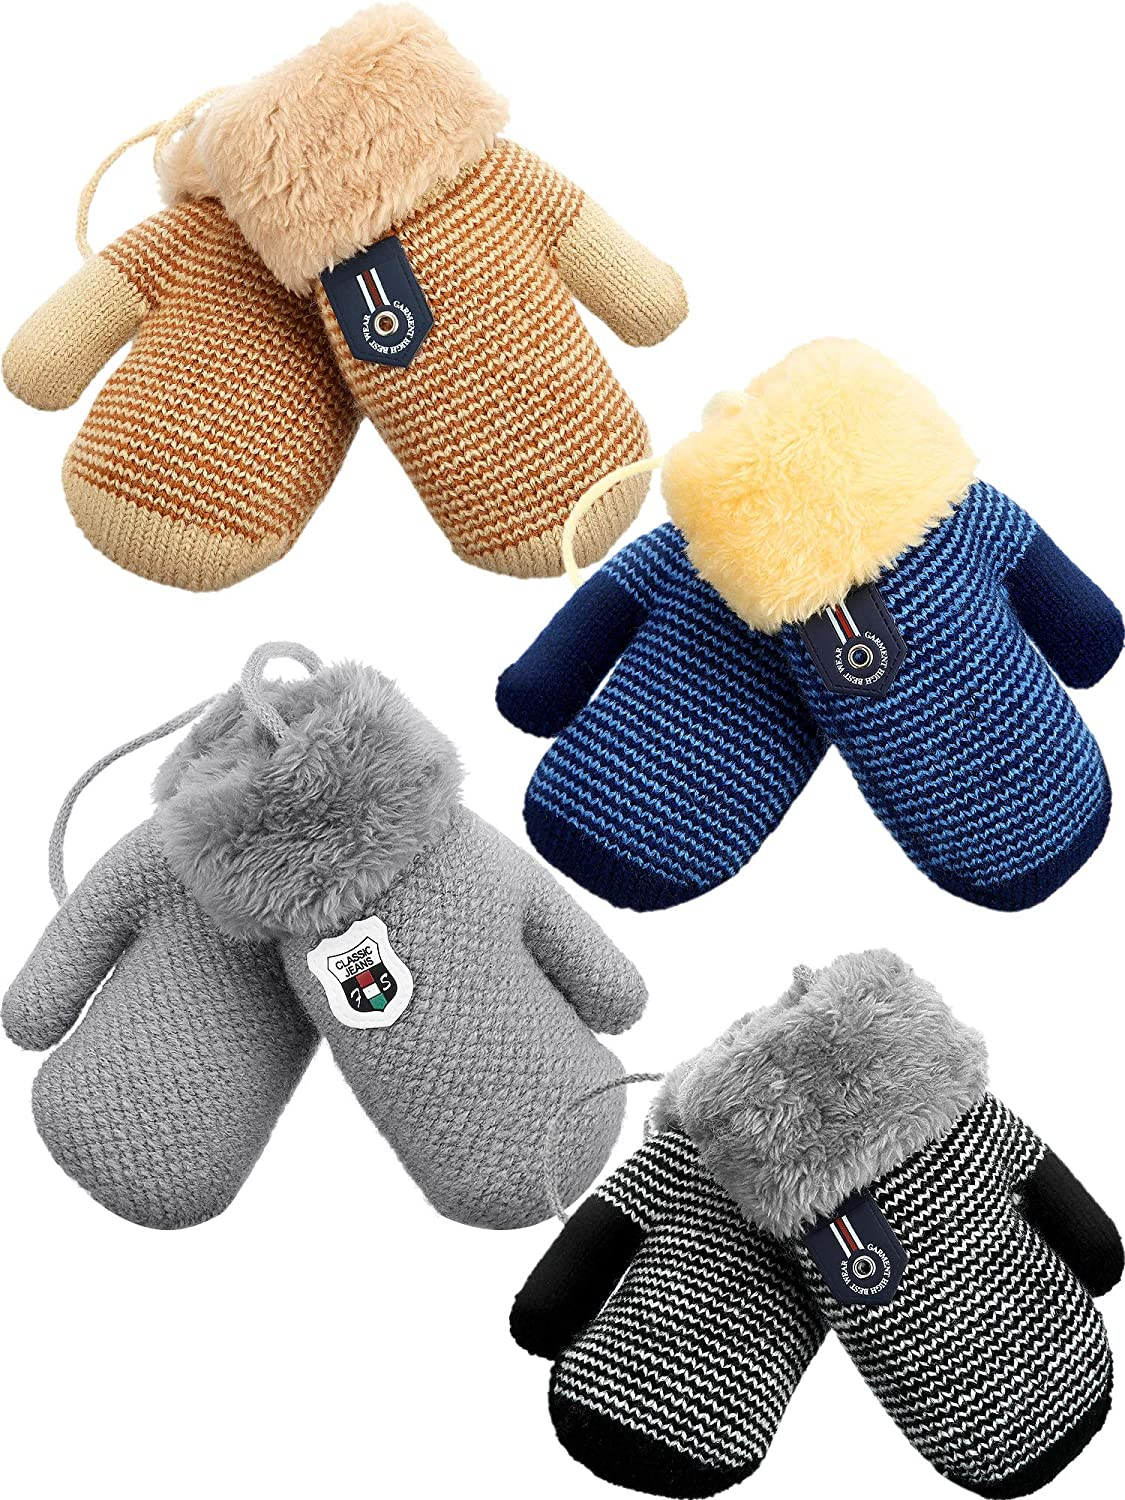 4 Pair Fleece Lined Mitten for Baby Kid Toddler Gloves Knit Thick Thermal Gloves (Light Gray, Striped Beige, Striped Black, Striped Dark Blue)